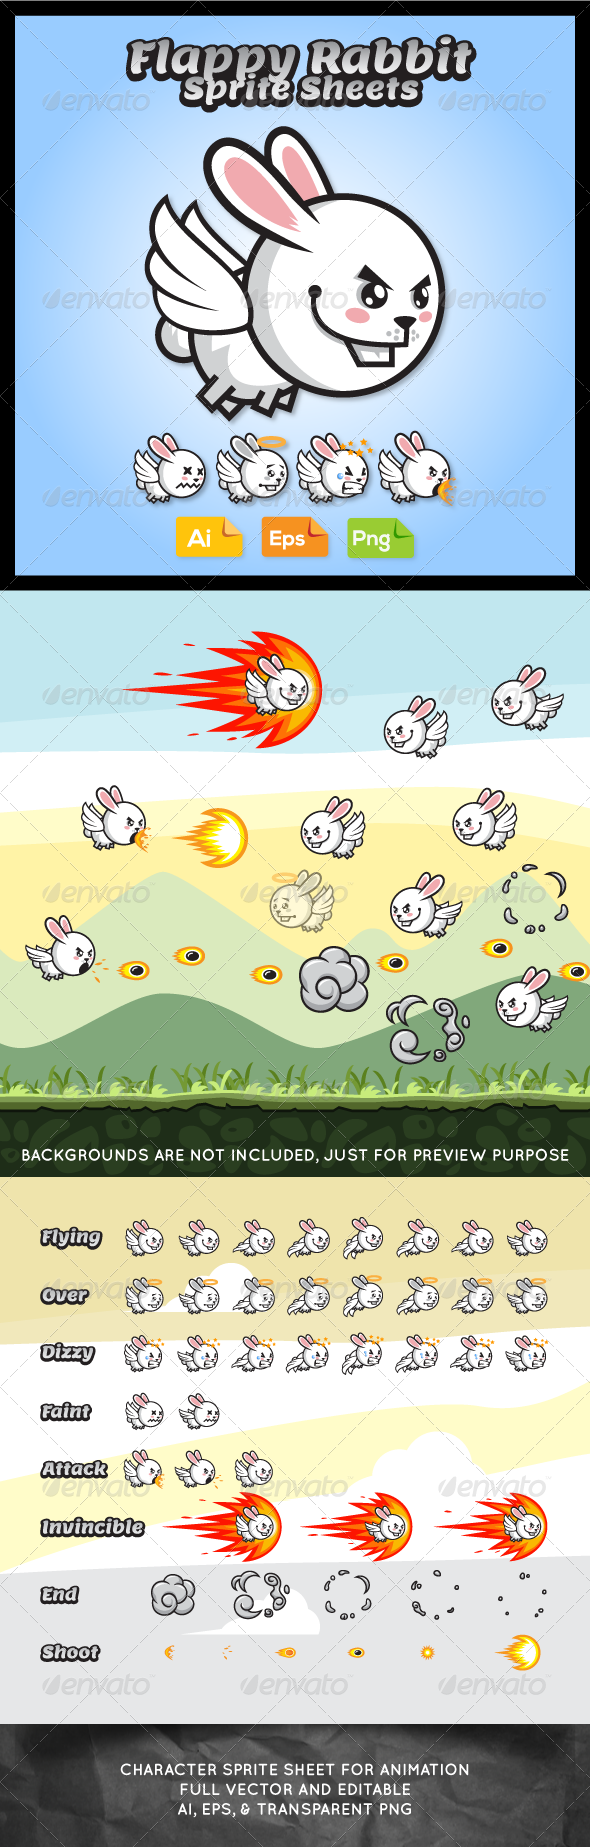 GraphicRiver Game Character Flappy Rabbit 7621855